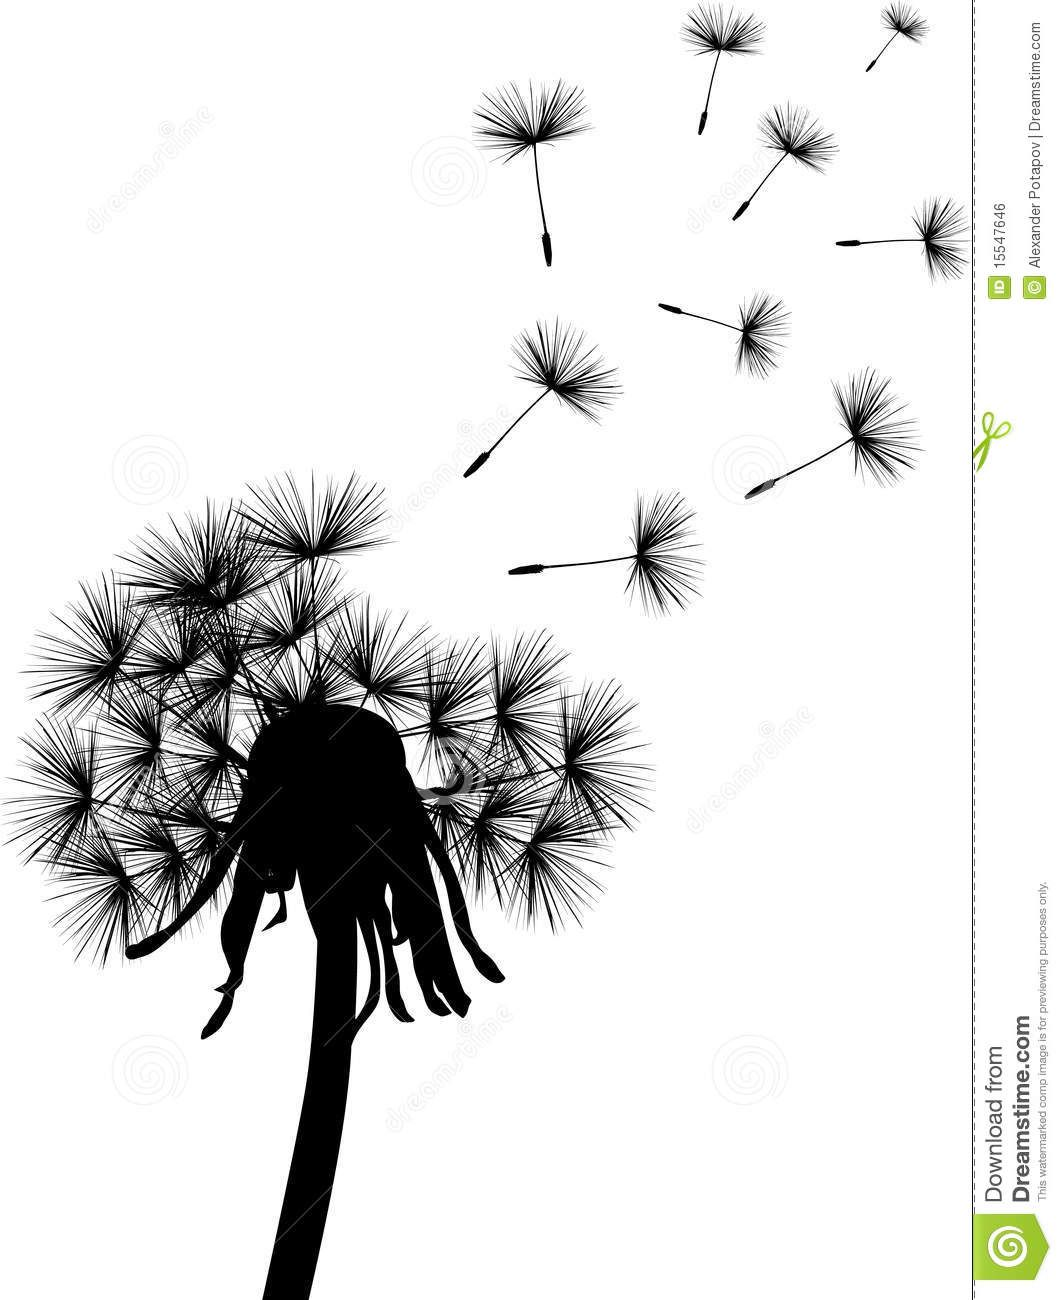 Dandelion clipart royalty free. Black plant stock image